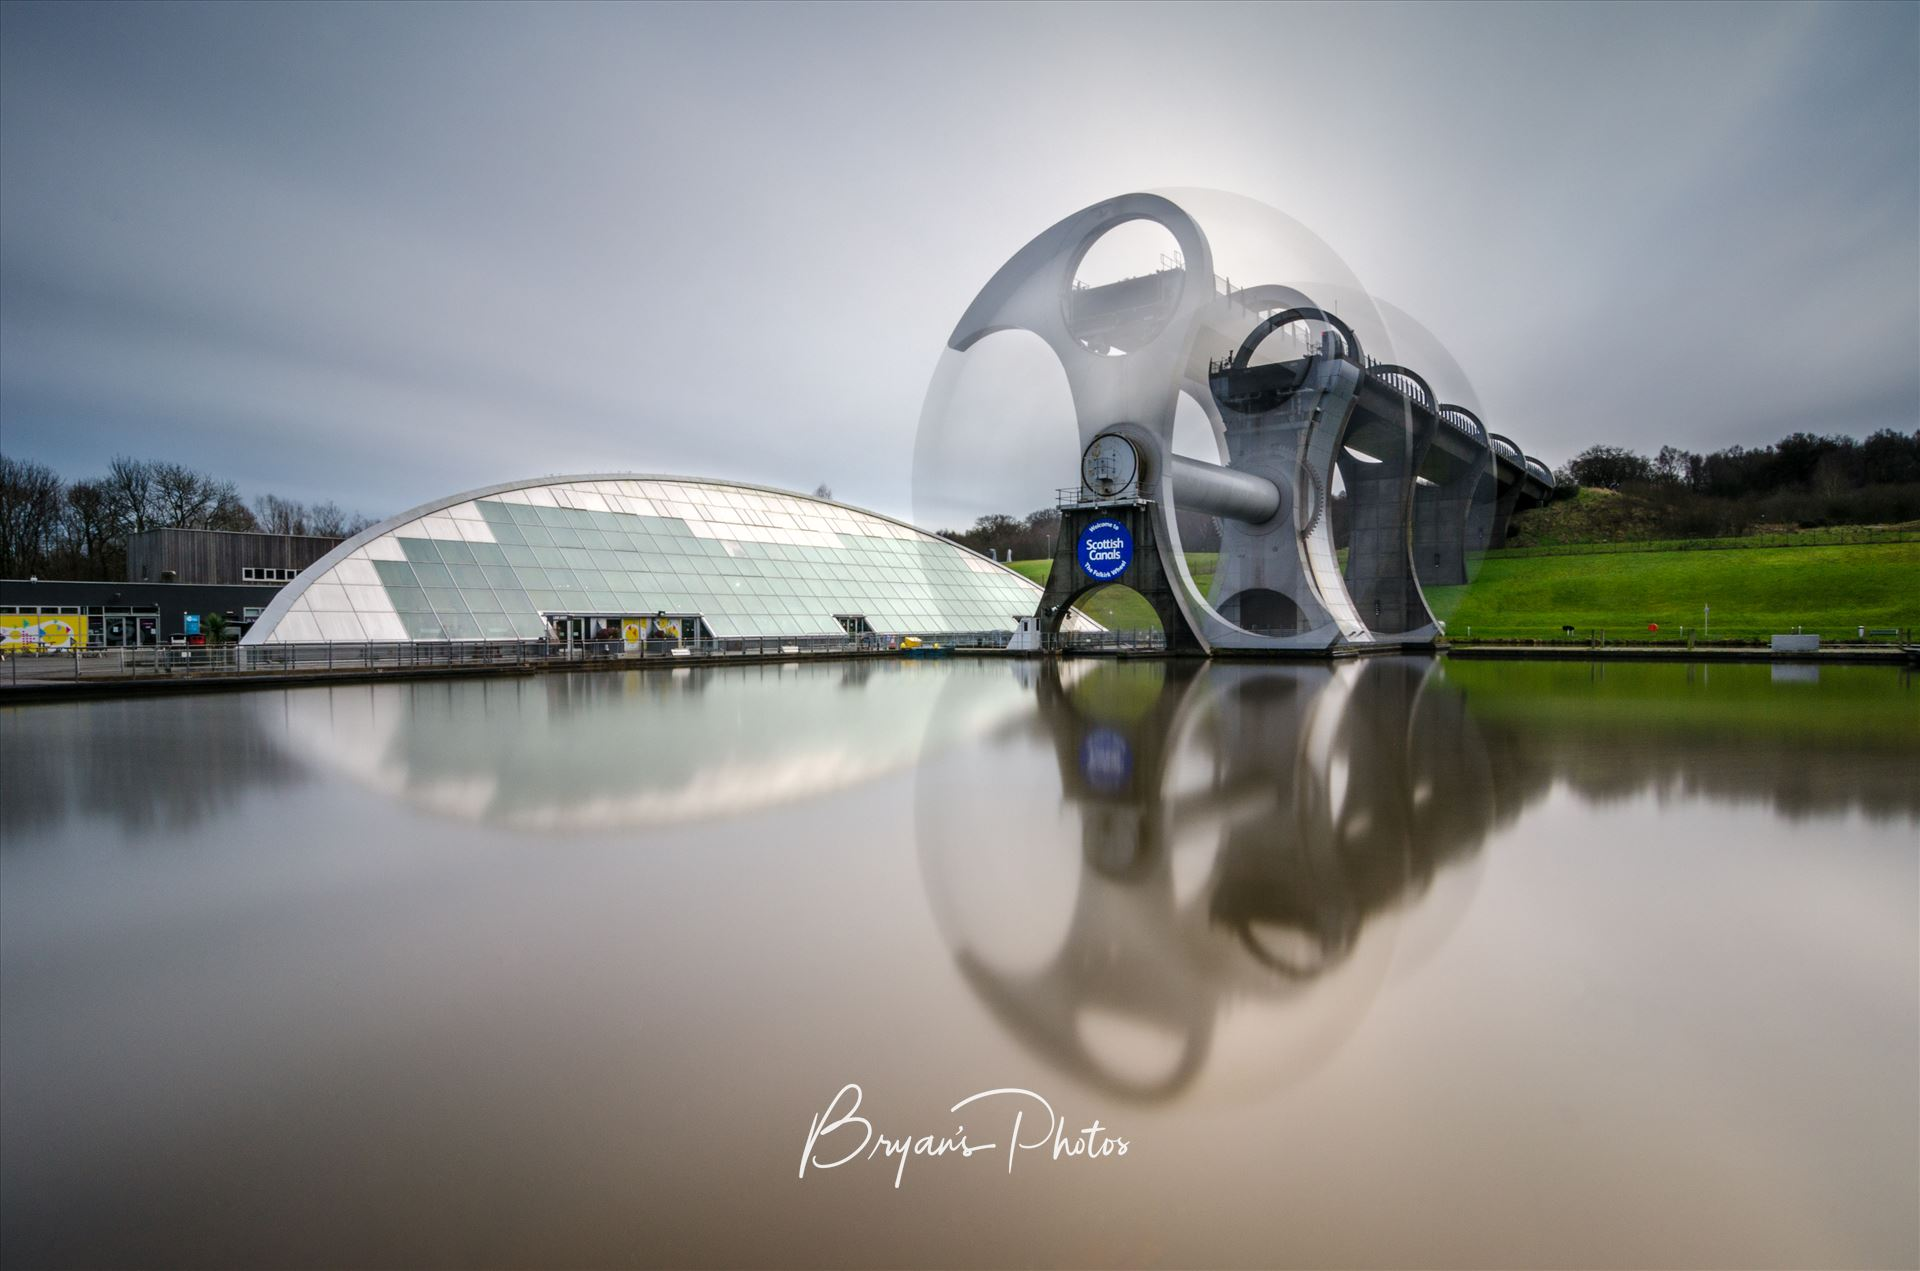 Falkirk Wheel In Motion A long exposure photograph of the Falkirk Wheel capturing the movement of the wheel as it lifts boats between the Forth and Clyde and Union canals. by Bryans Photos